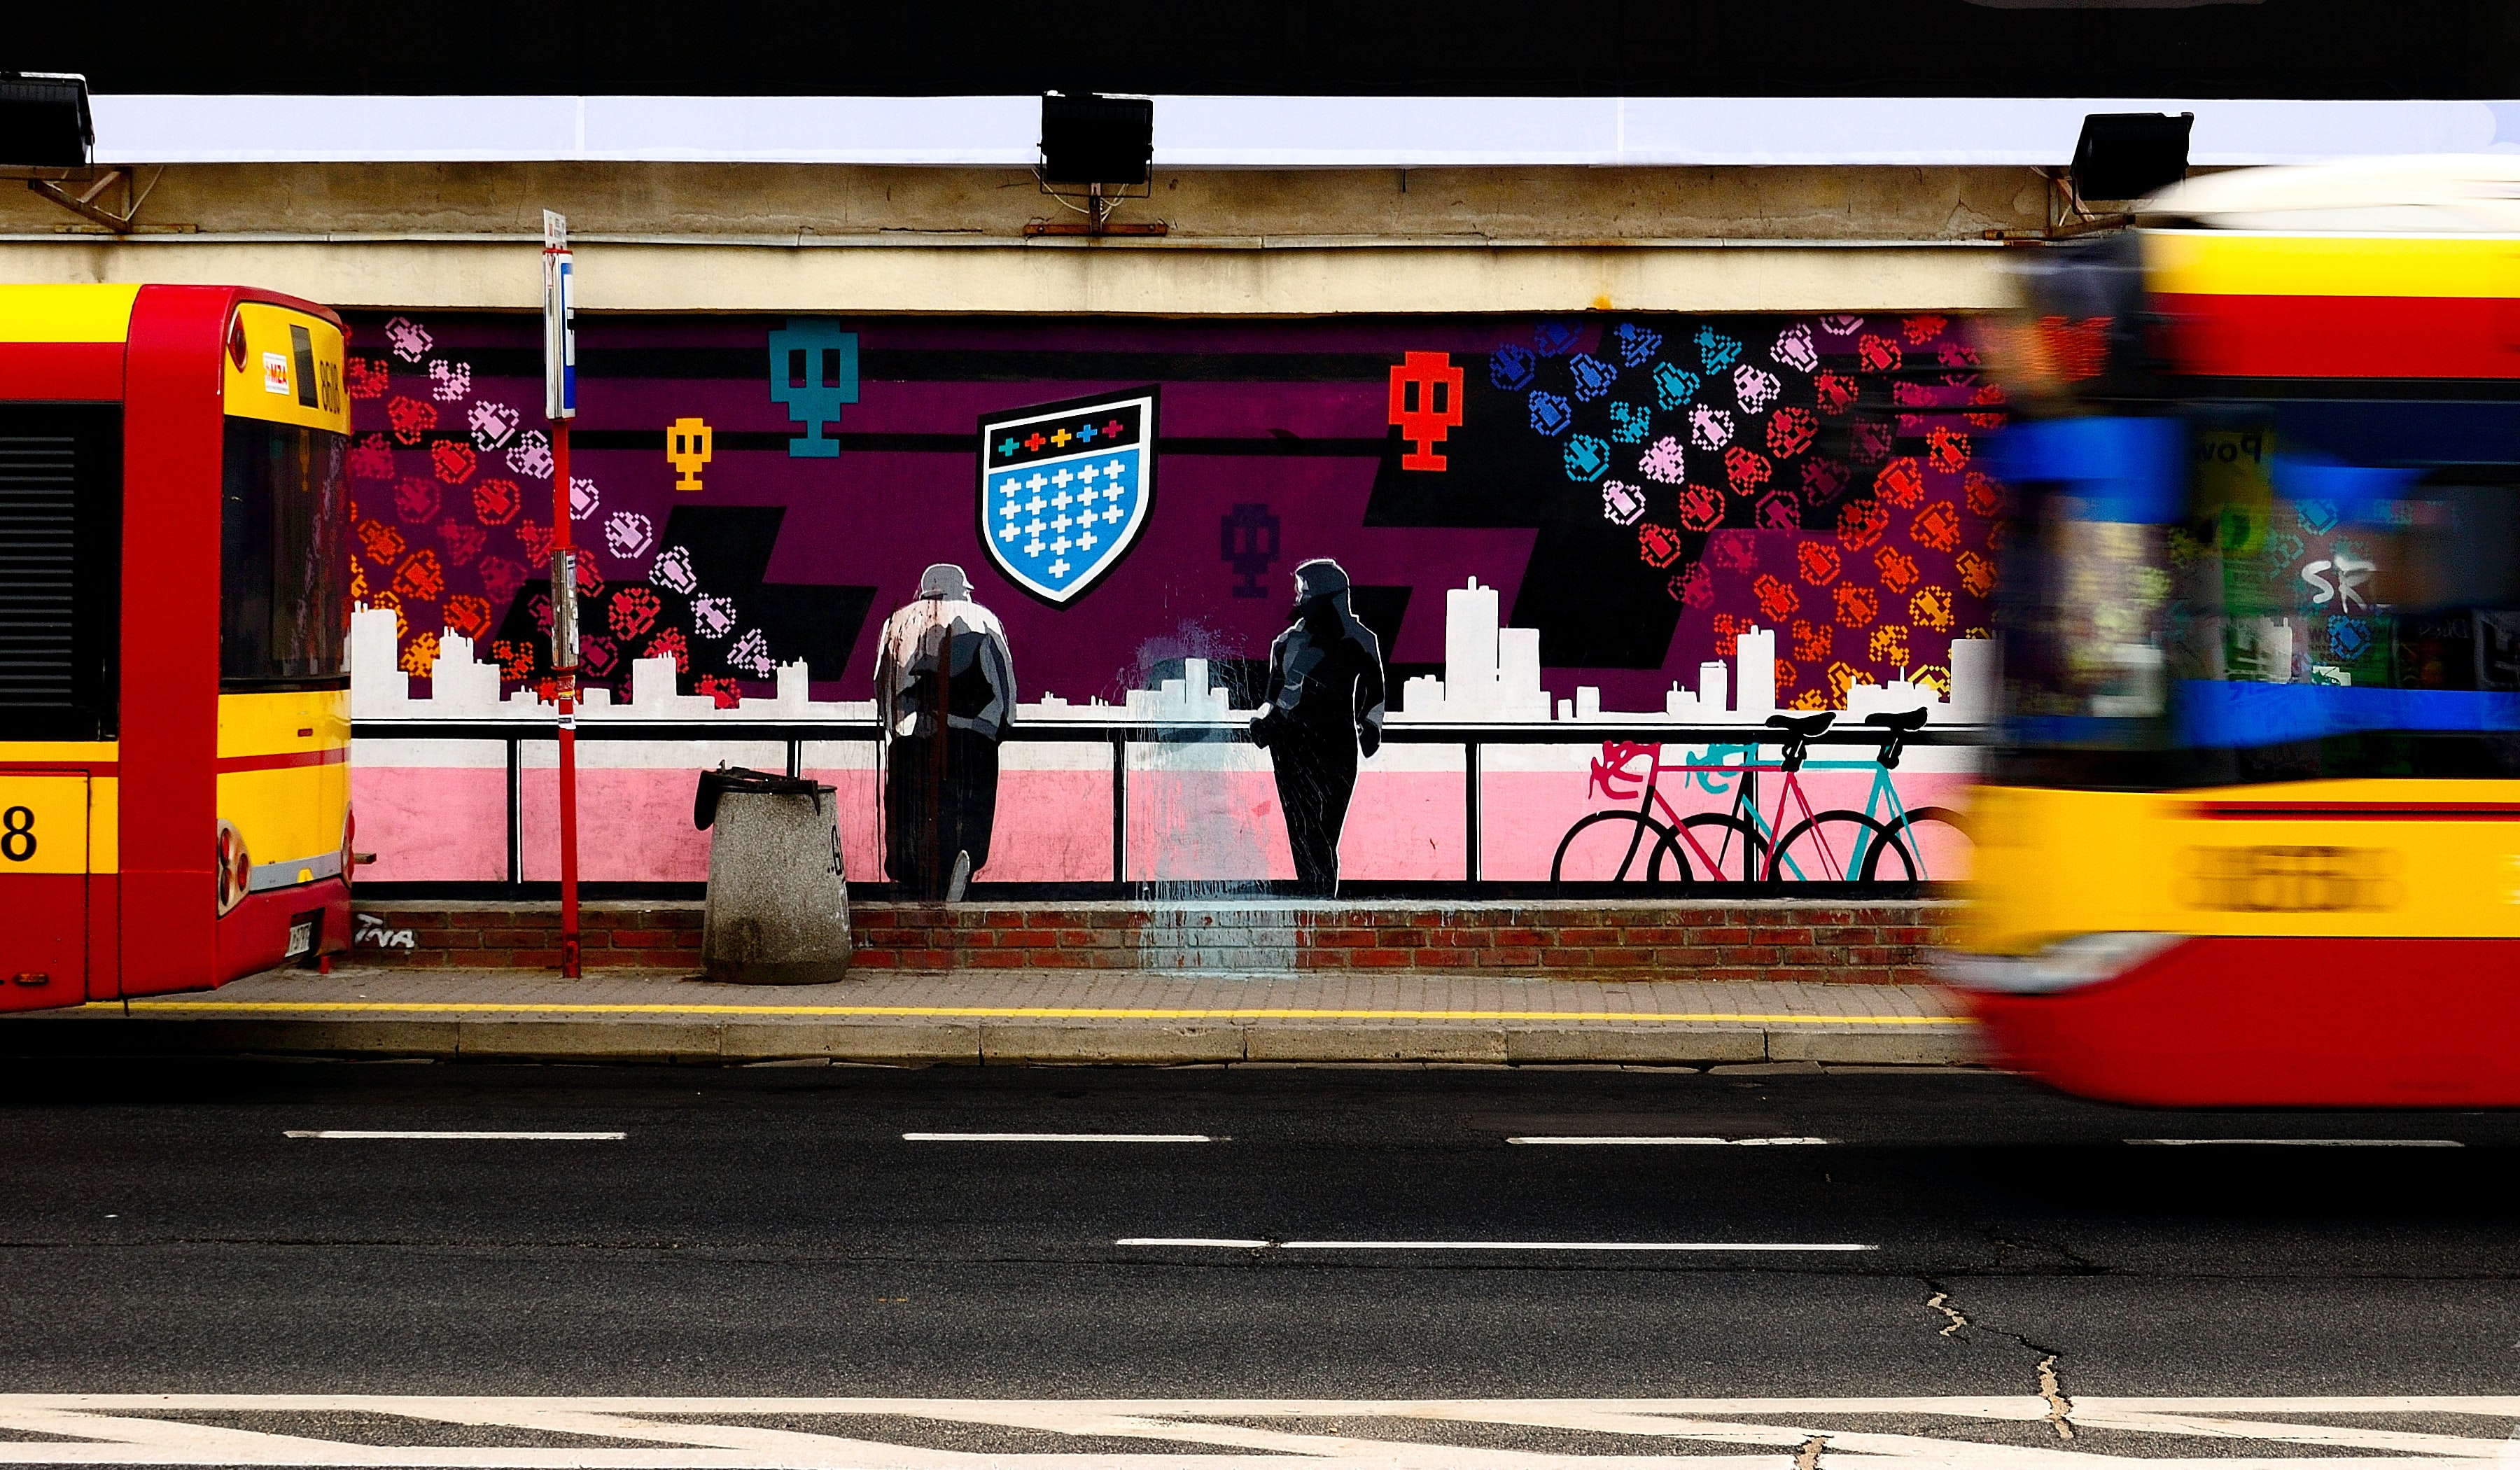 People standing against railing with public transport passing and colorful space invaders graffiti on wall